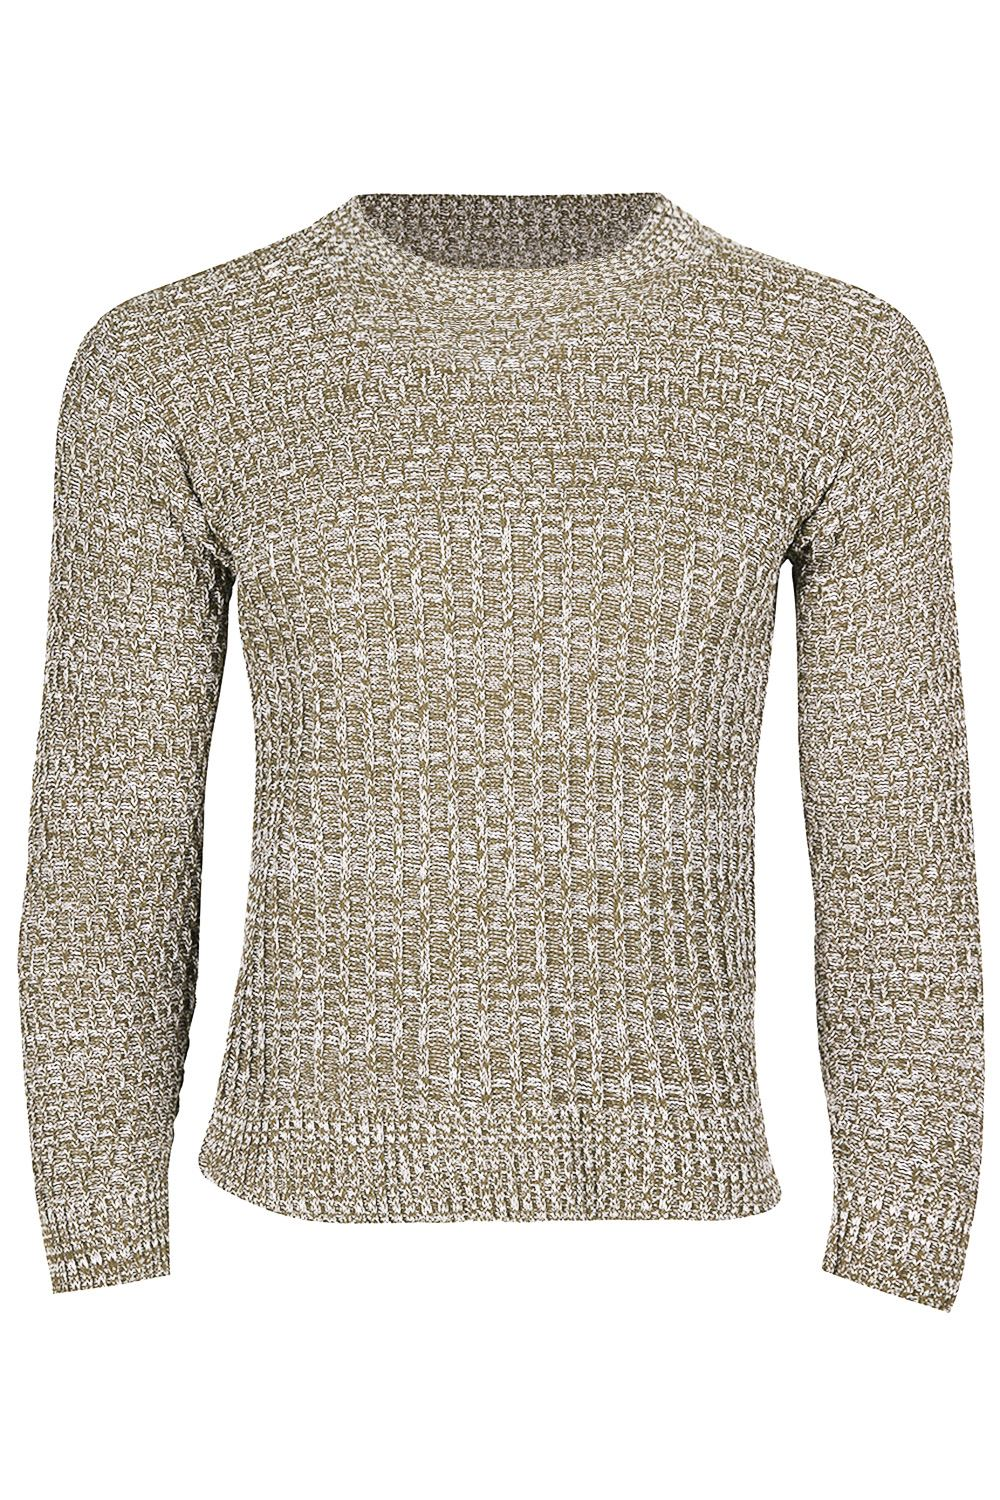 Mens Drop Cable Stitched Pattern Casual Sweater Knitted Crew Neck Jumper Top